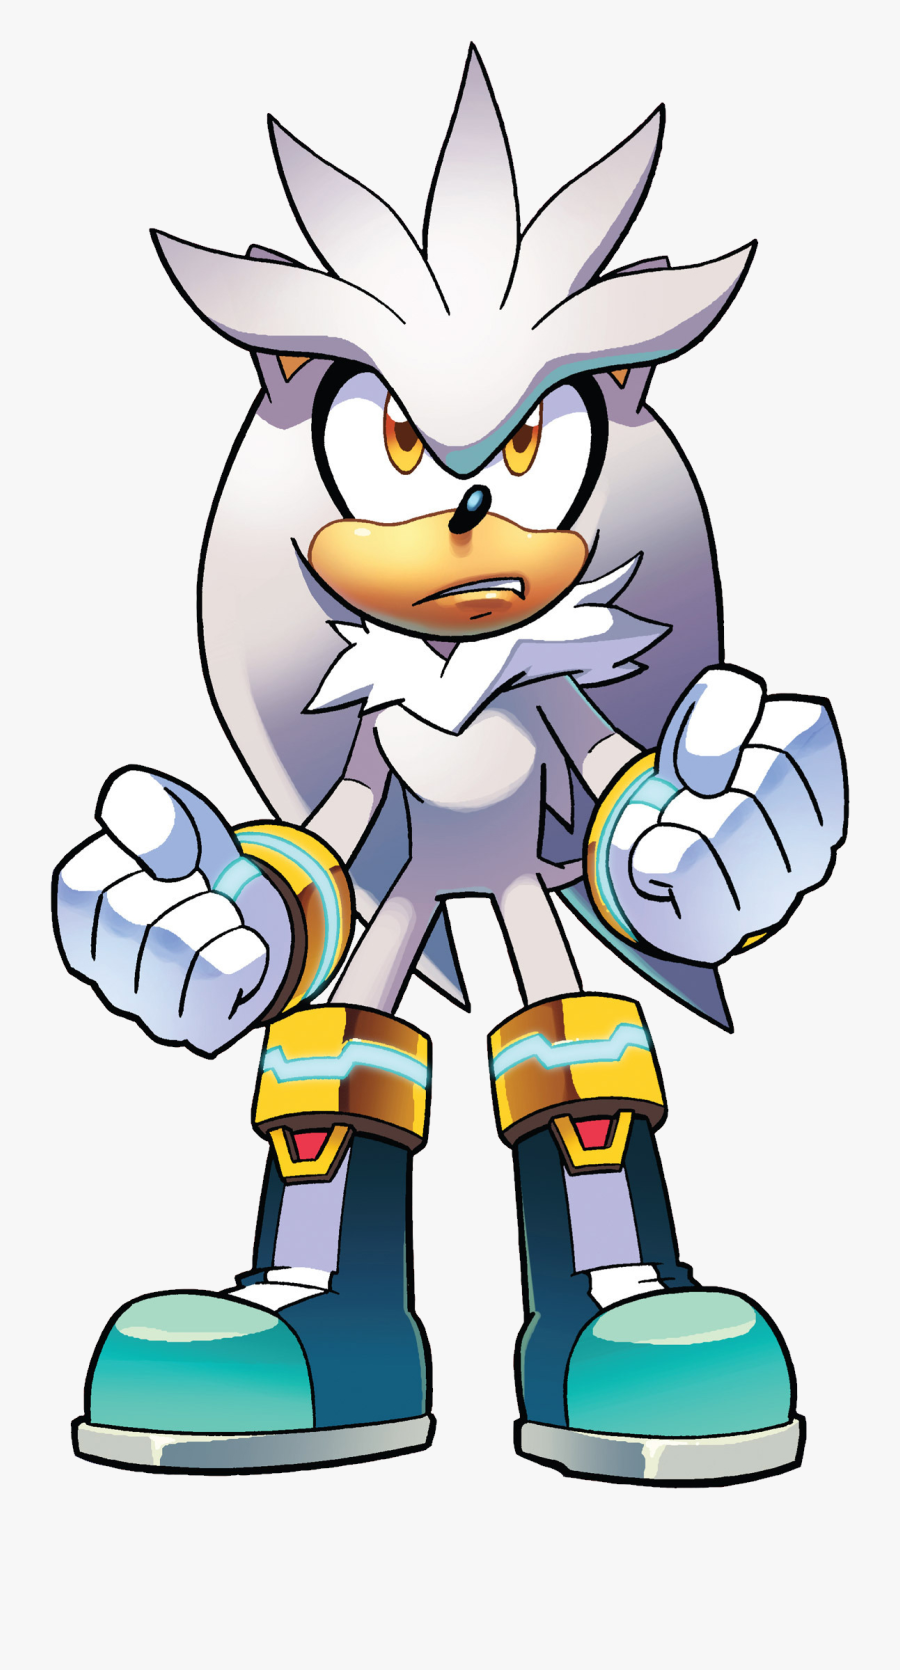 Sonic News Network - Silver The Hedgehog Death Battle, Transparent Clipart